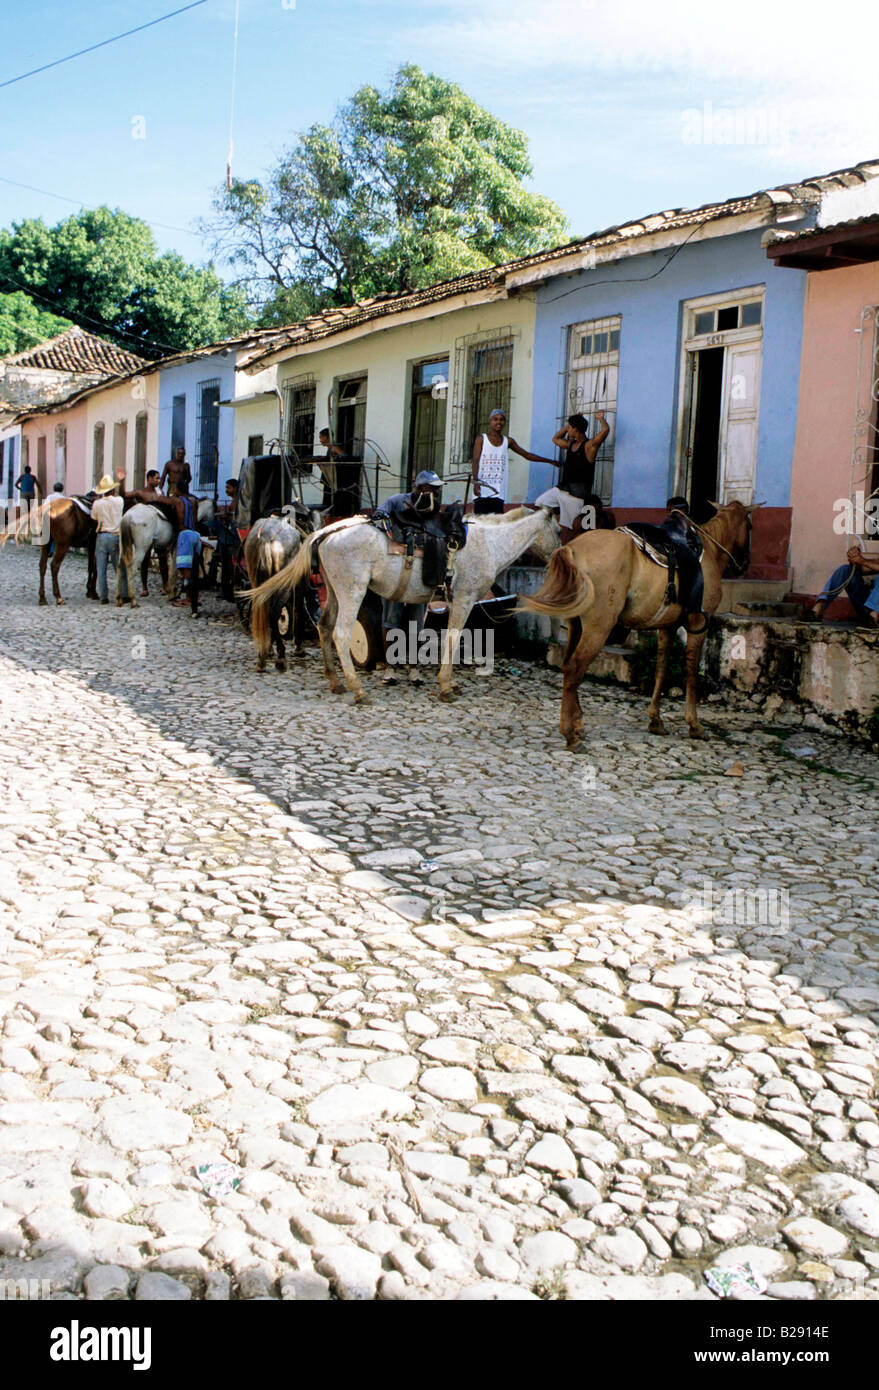 Parking backstreets Trinidad Cuba Date 23 04 2008 Ref ZB955 113876 0003 COMPULSORY CREDIT World Pictures Photoshot - Stock Image